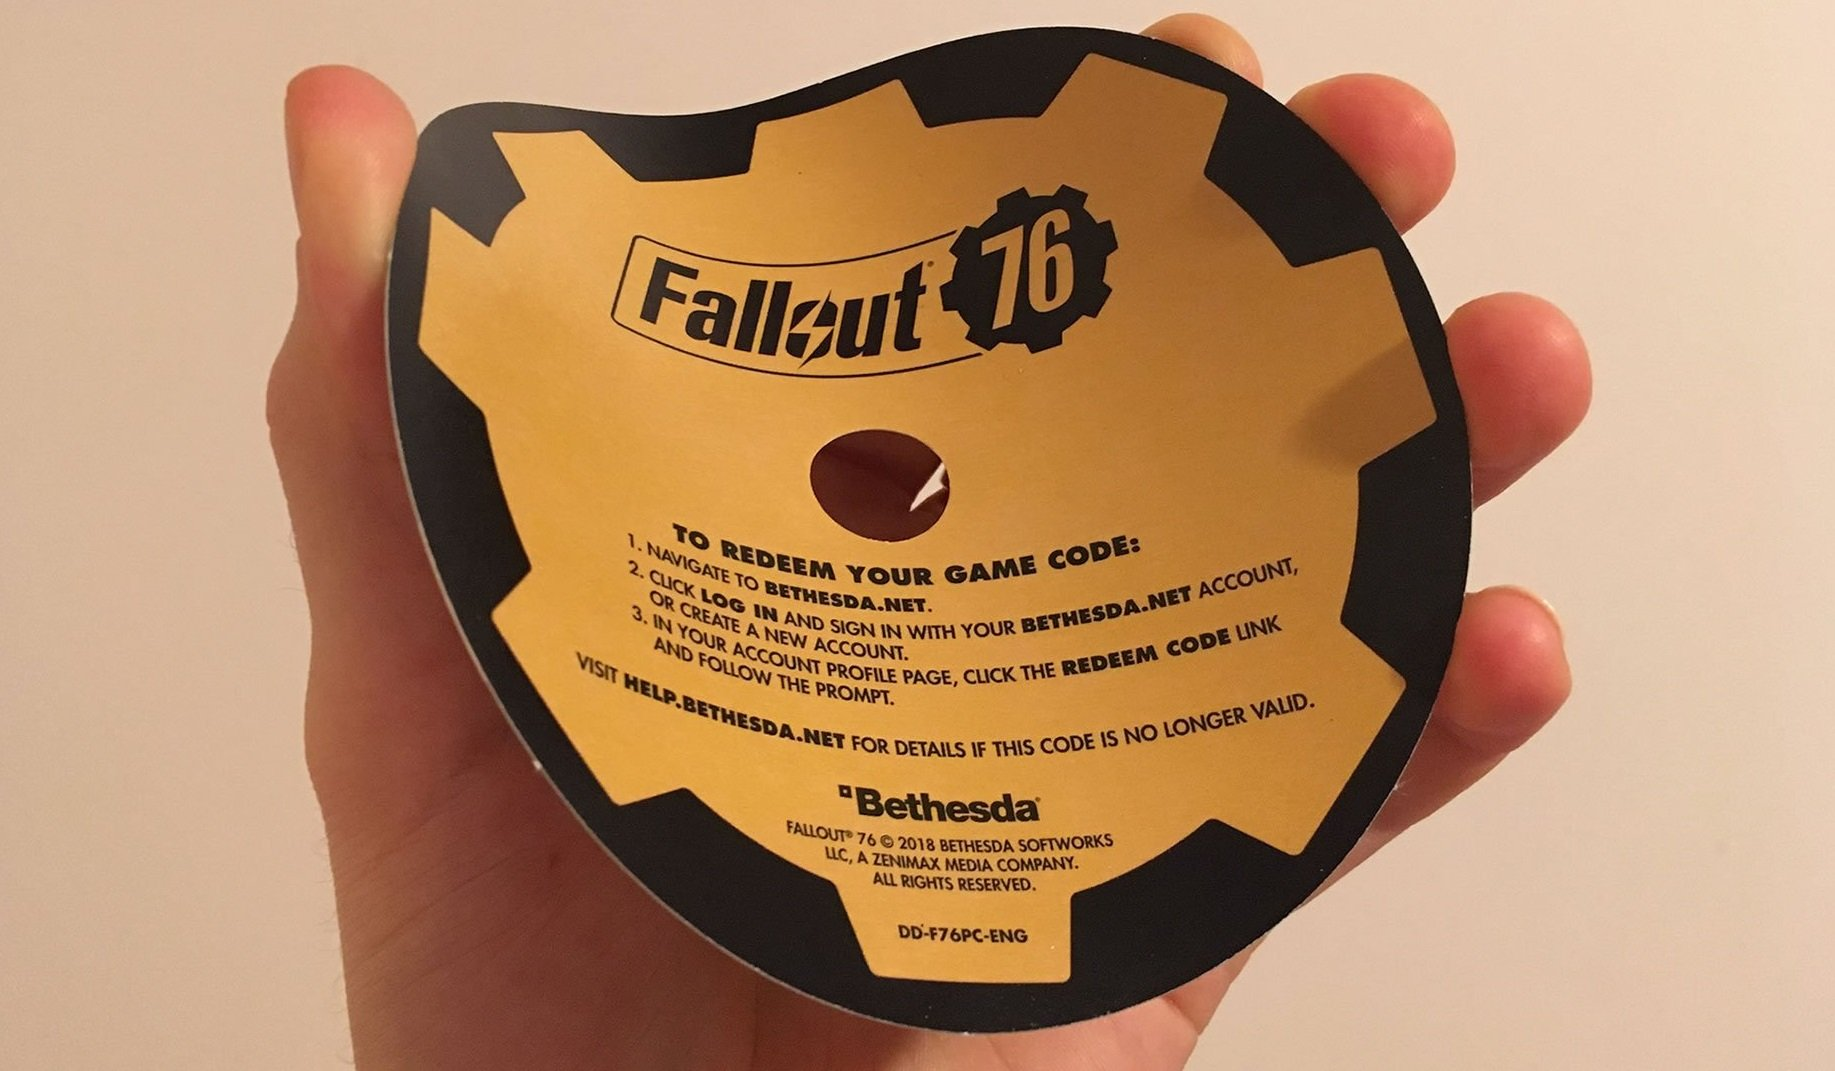 Physical copies of Fallout 76 on PC include cardboard disc | AllGamers